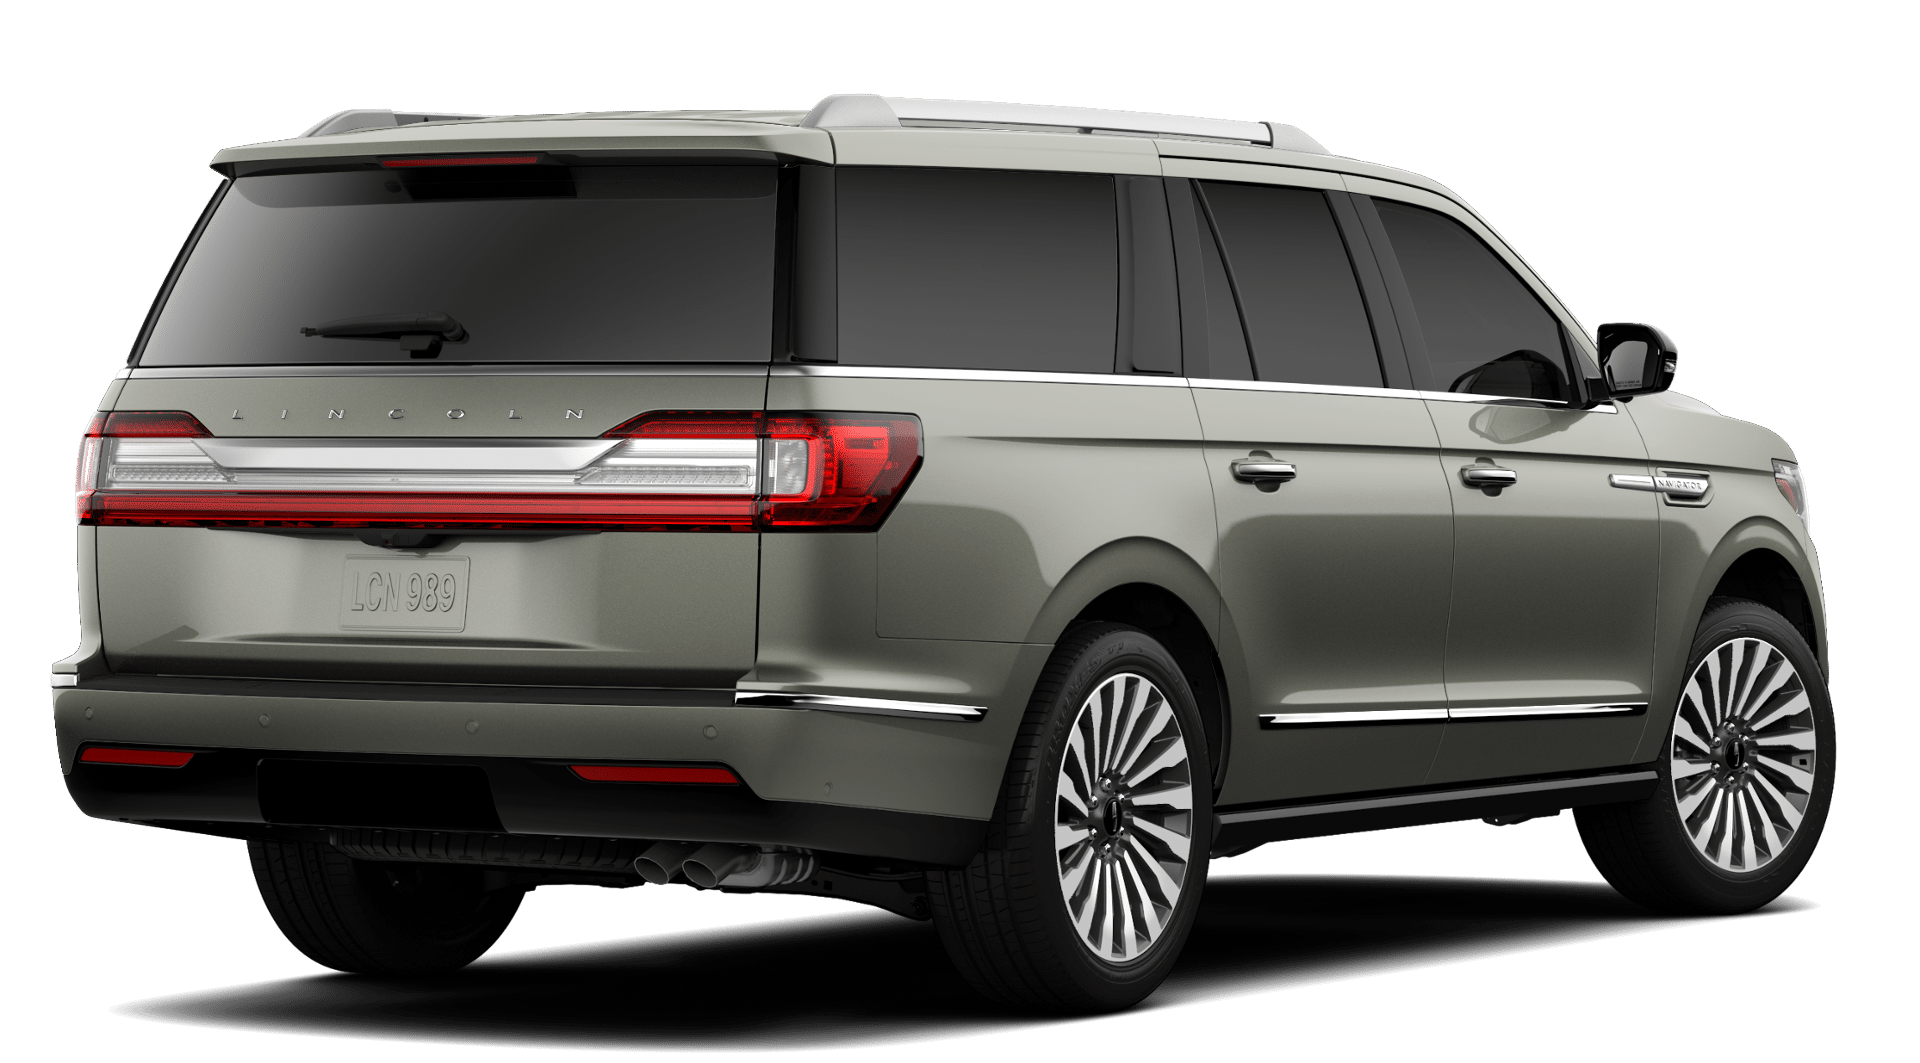 2019 Lincoln Navigator Reserve L Silver Jade Exterior Rear Picture.png